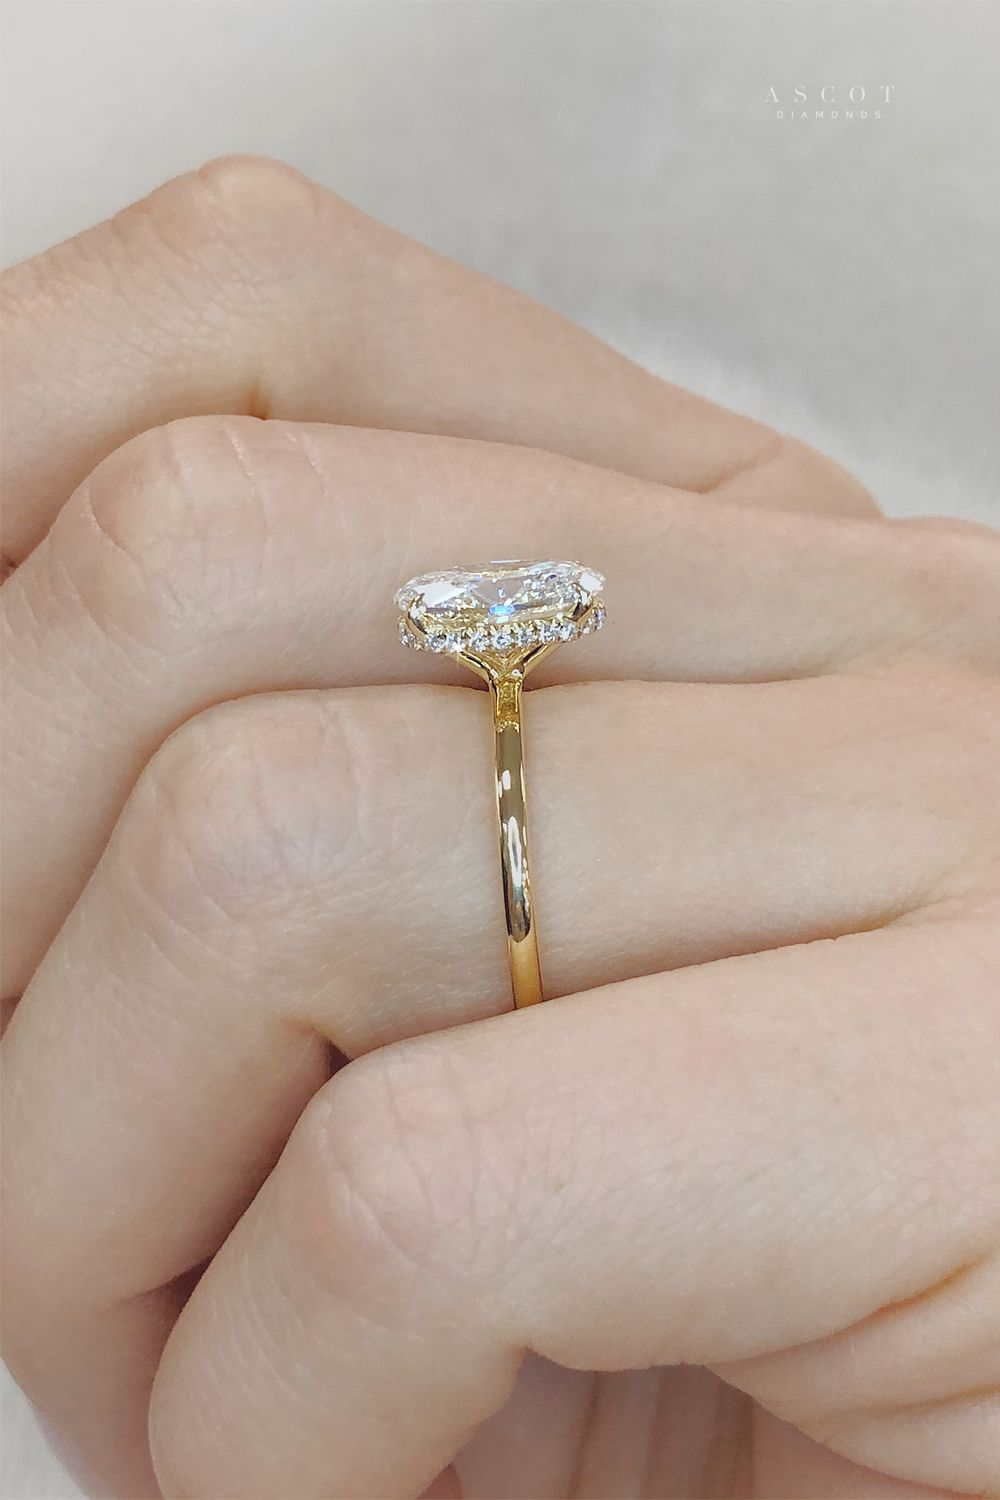 This elegant custom engagement ring features a delicate hidden halo of diamonds that wraps around the center stone.  Schedule a consultation to learn more about designing this diamond ring style.  #ascotdiamonds #engagementrings